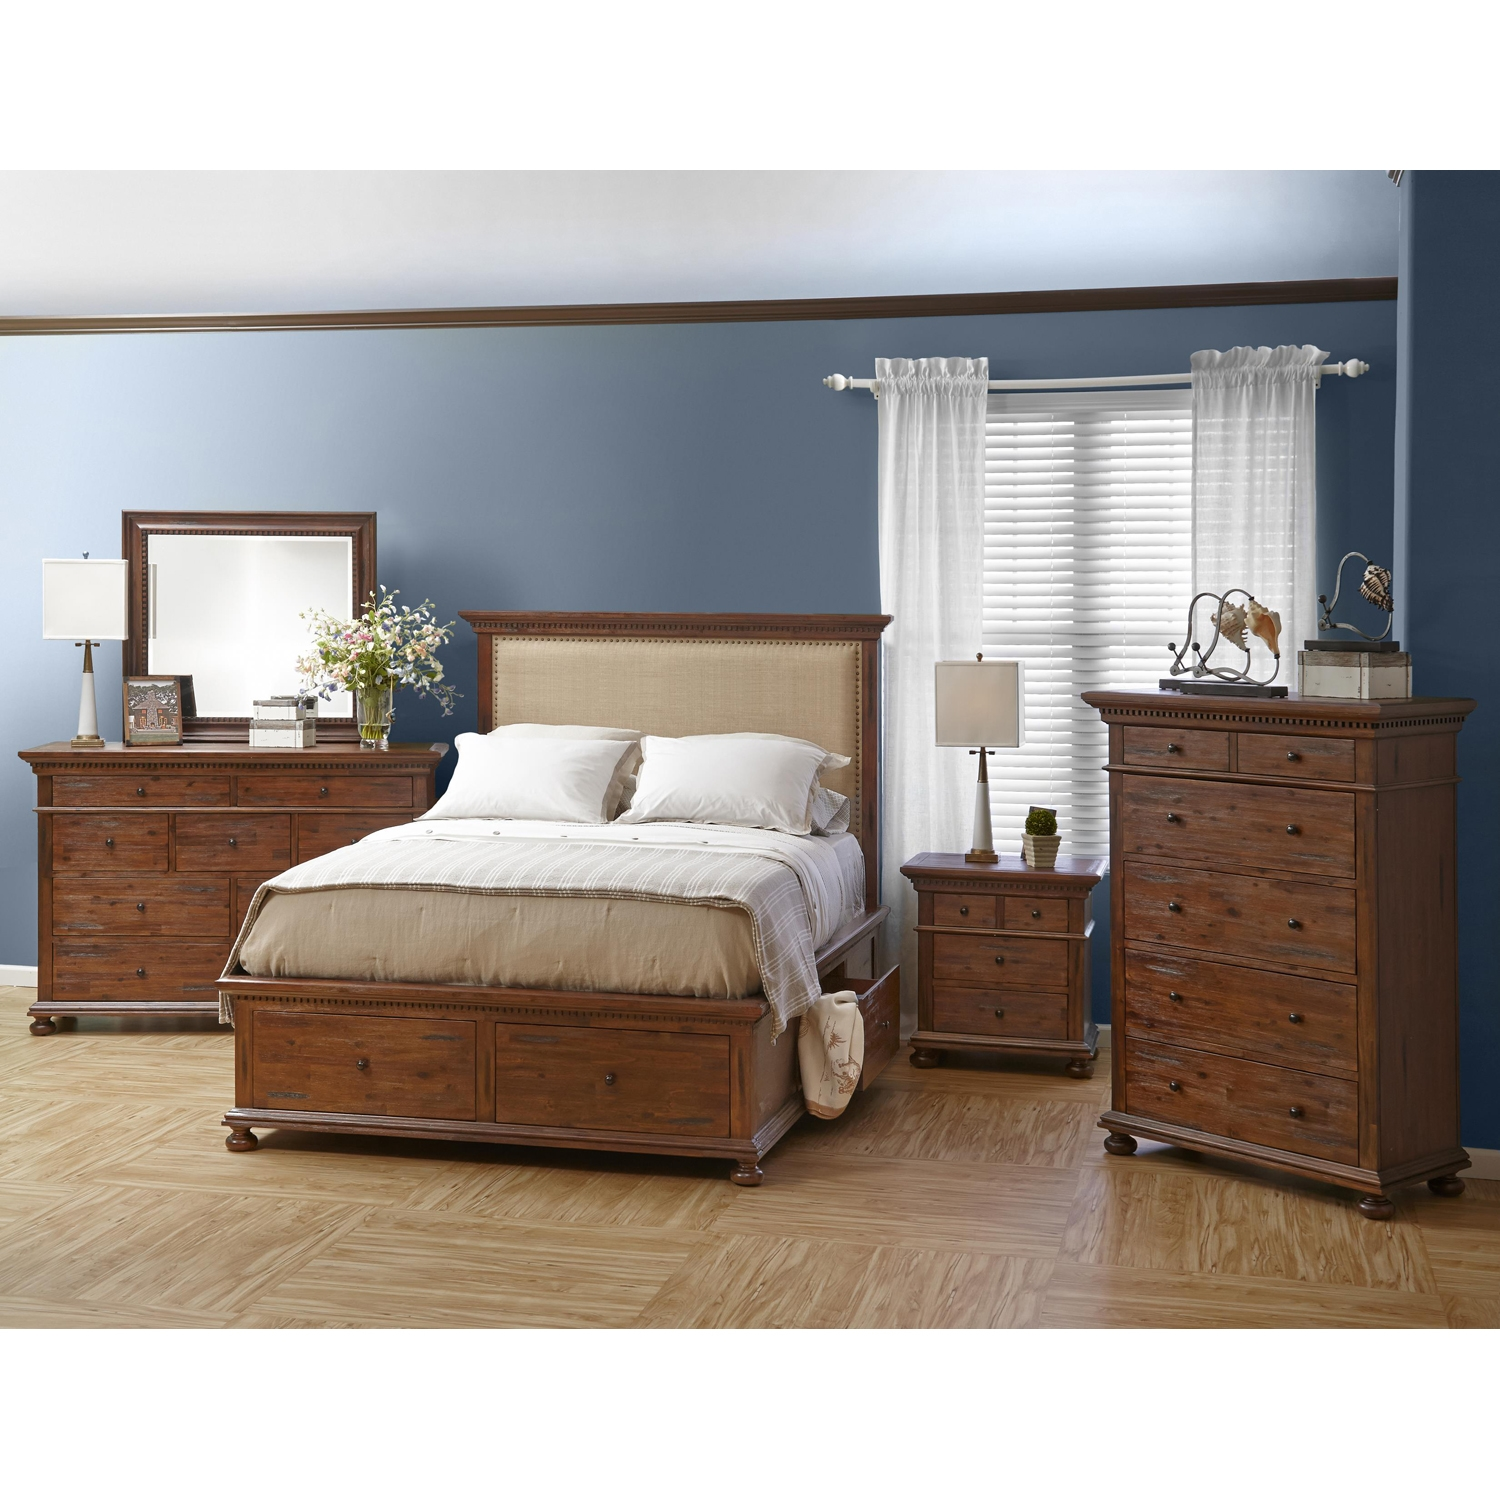 Geneva Hills 5-Drawer Chest - JOFR-680-30